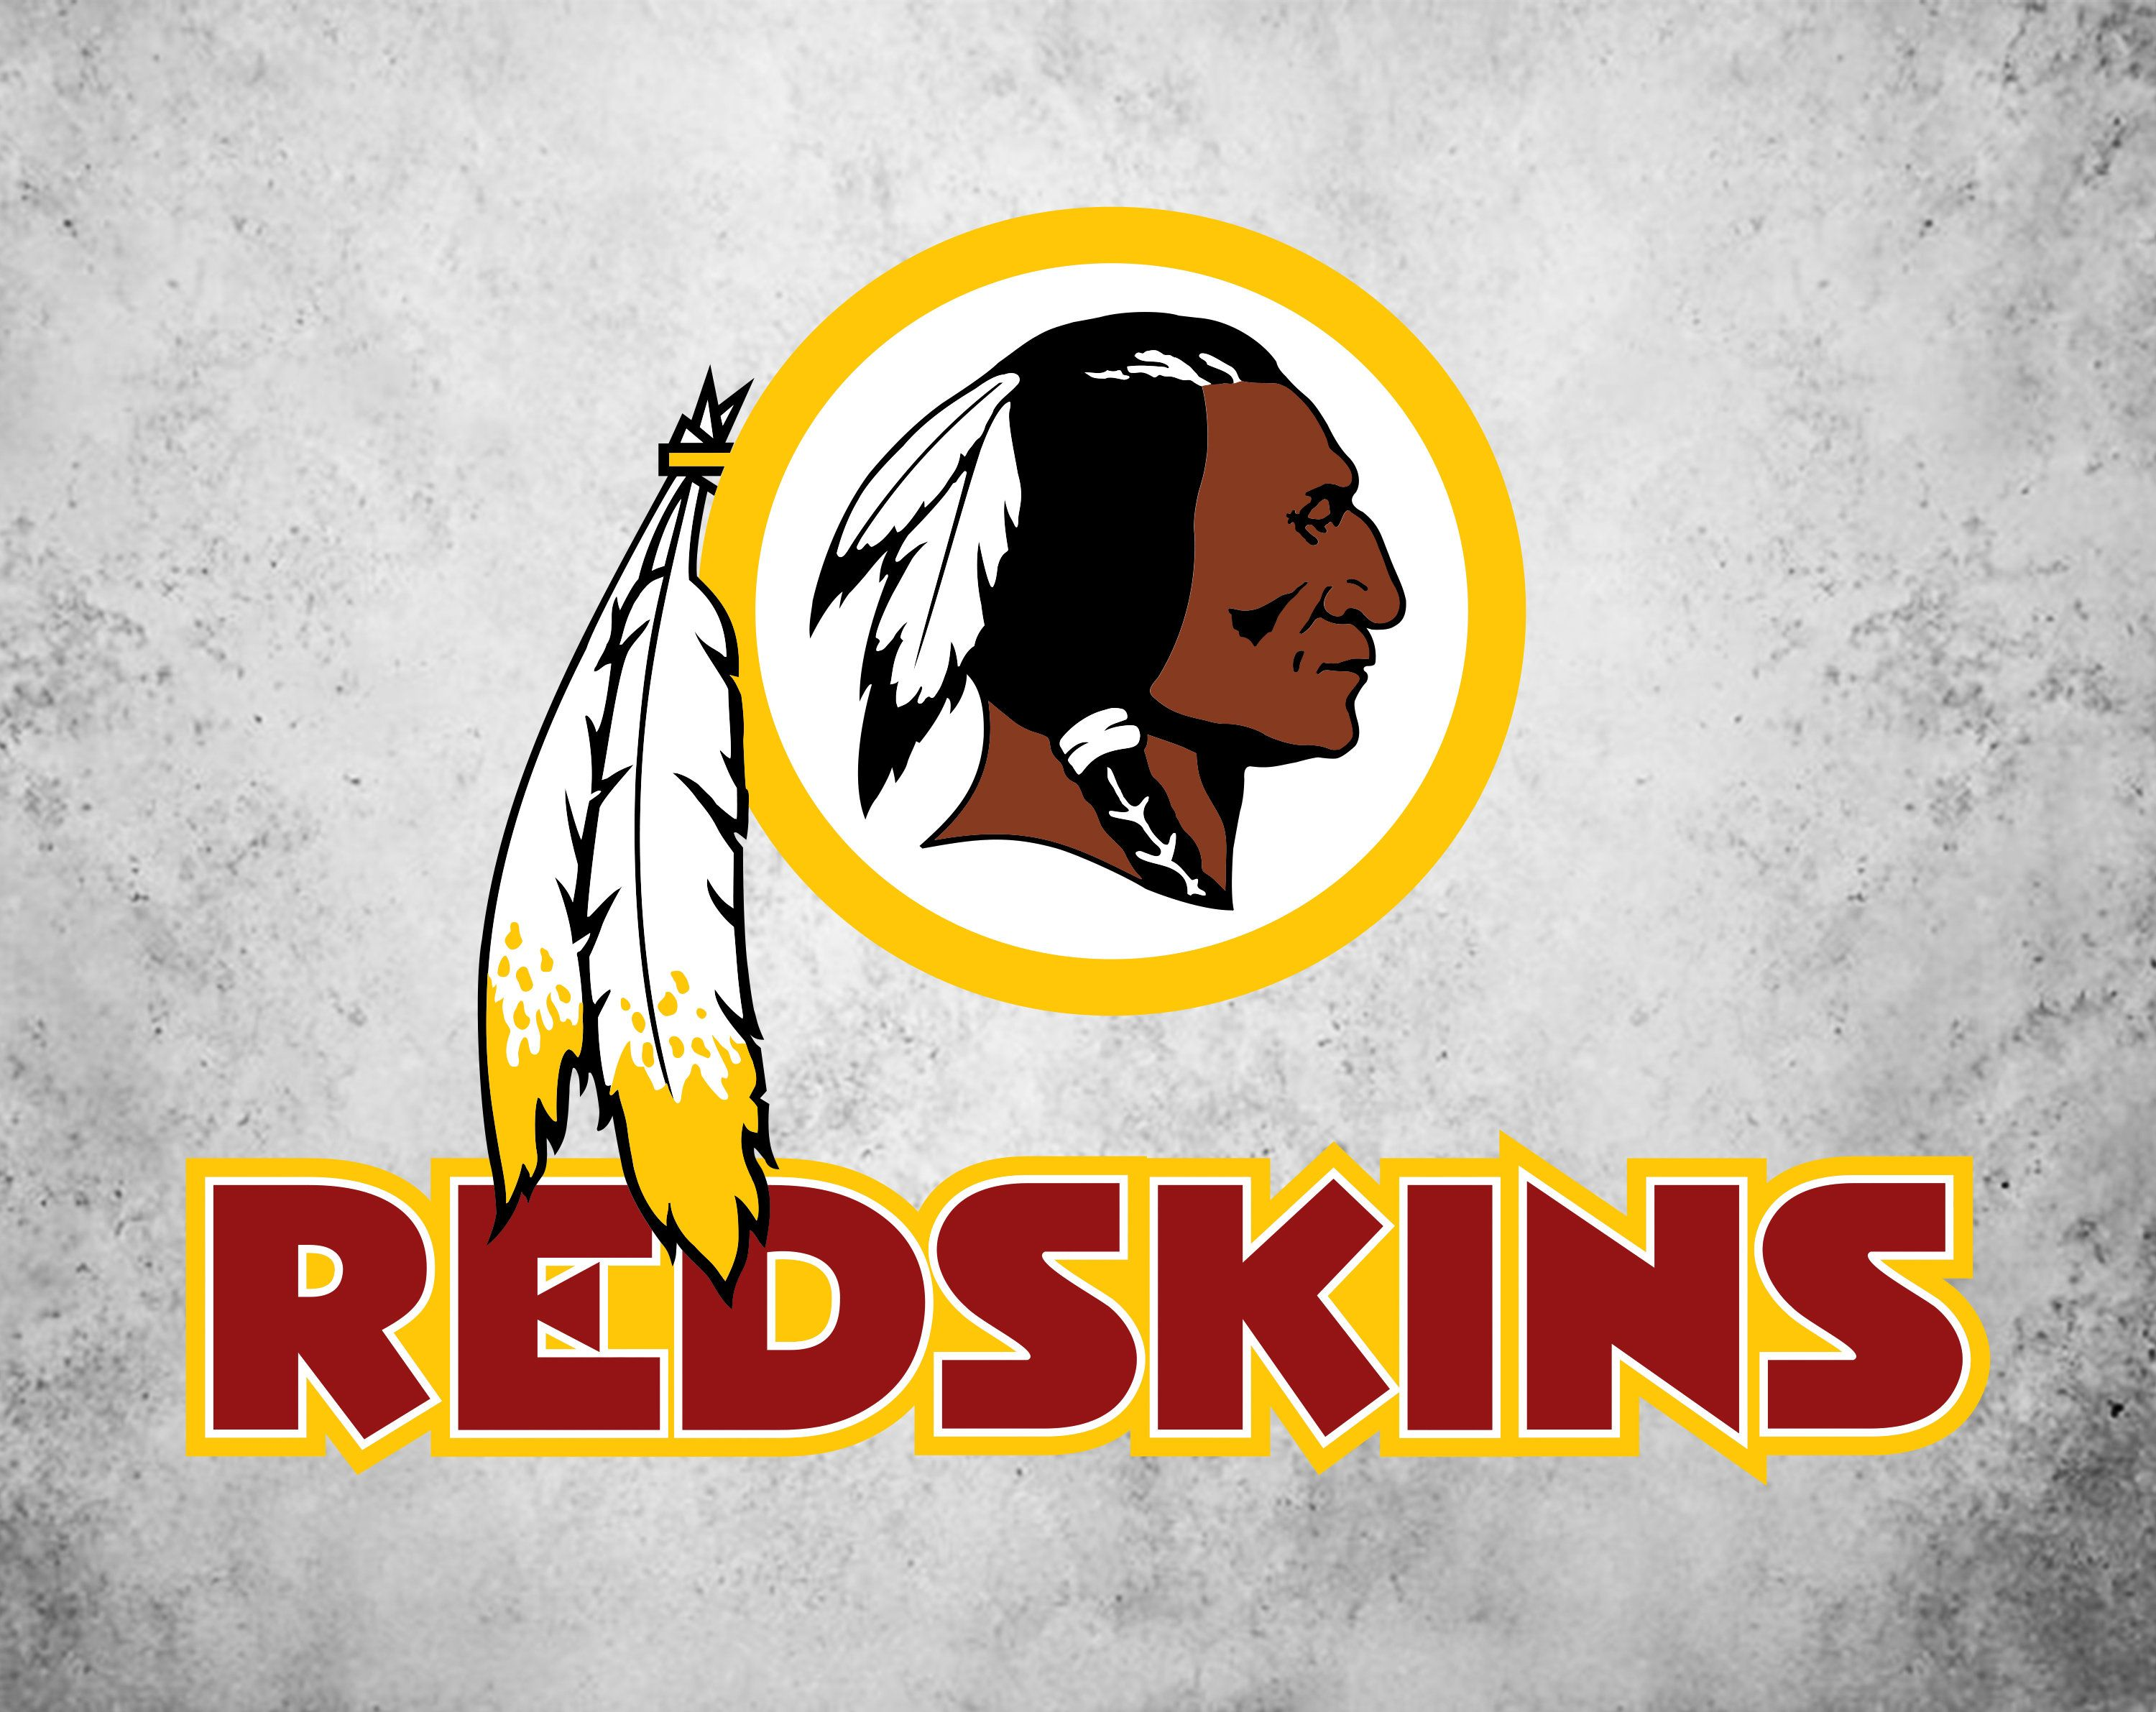 washington redskins Svg, Patriots Svg, NFL svg, Football